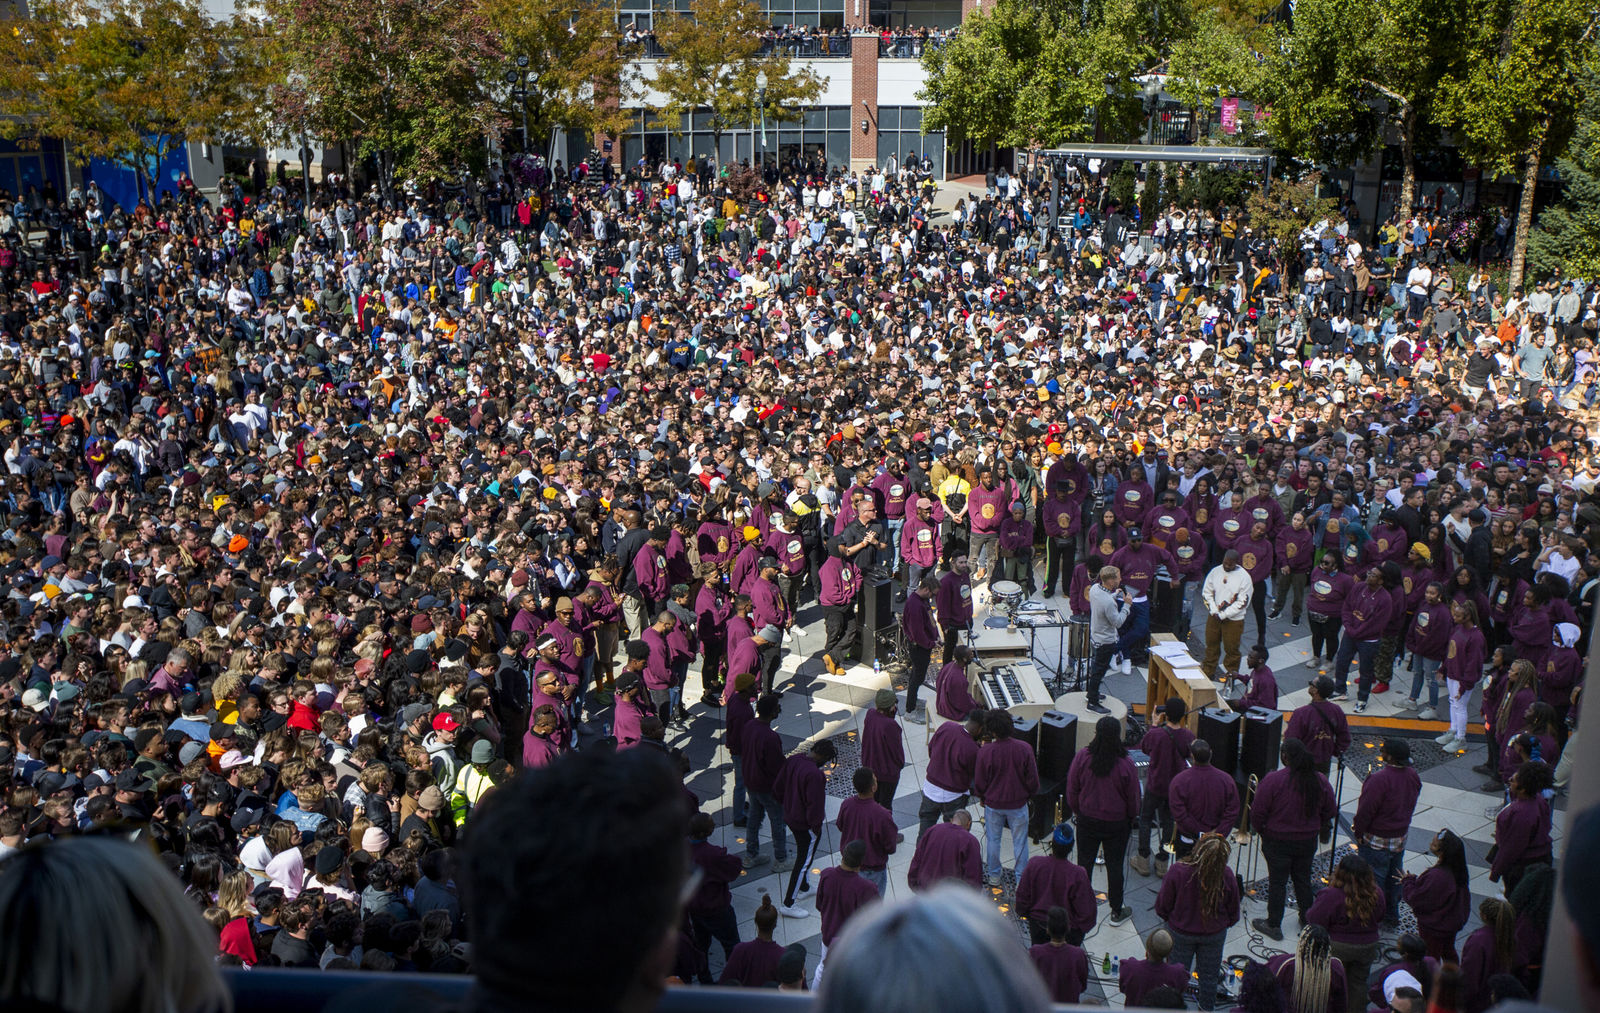 "Thousands pack into The Gateway in Salt Lake City for Kanye West's ""Sunday Service,"" Saturday, Oct. 5, 2019. People were standing on and climbing up anything they could find to catch a glimpse of West. West can be seen in the bottom right wearing a white sweatshirt. (Colter Peterson/The Deseret News via AP)"